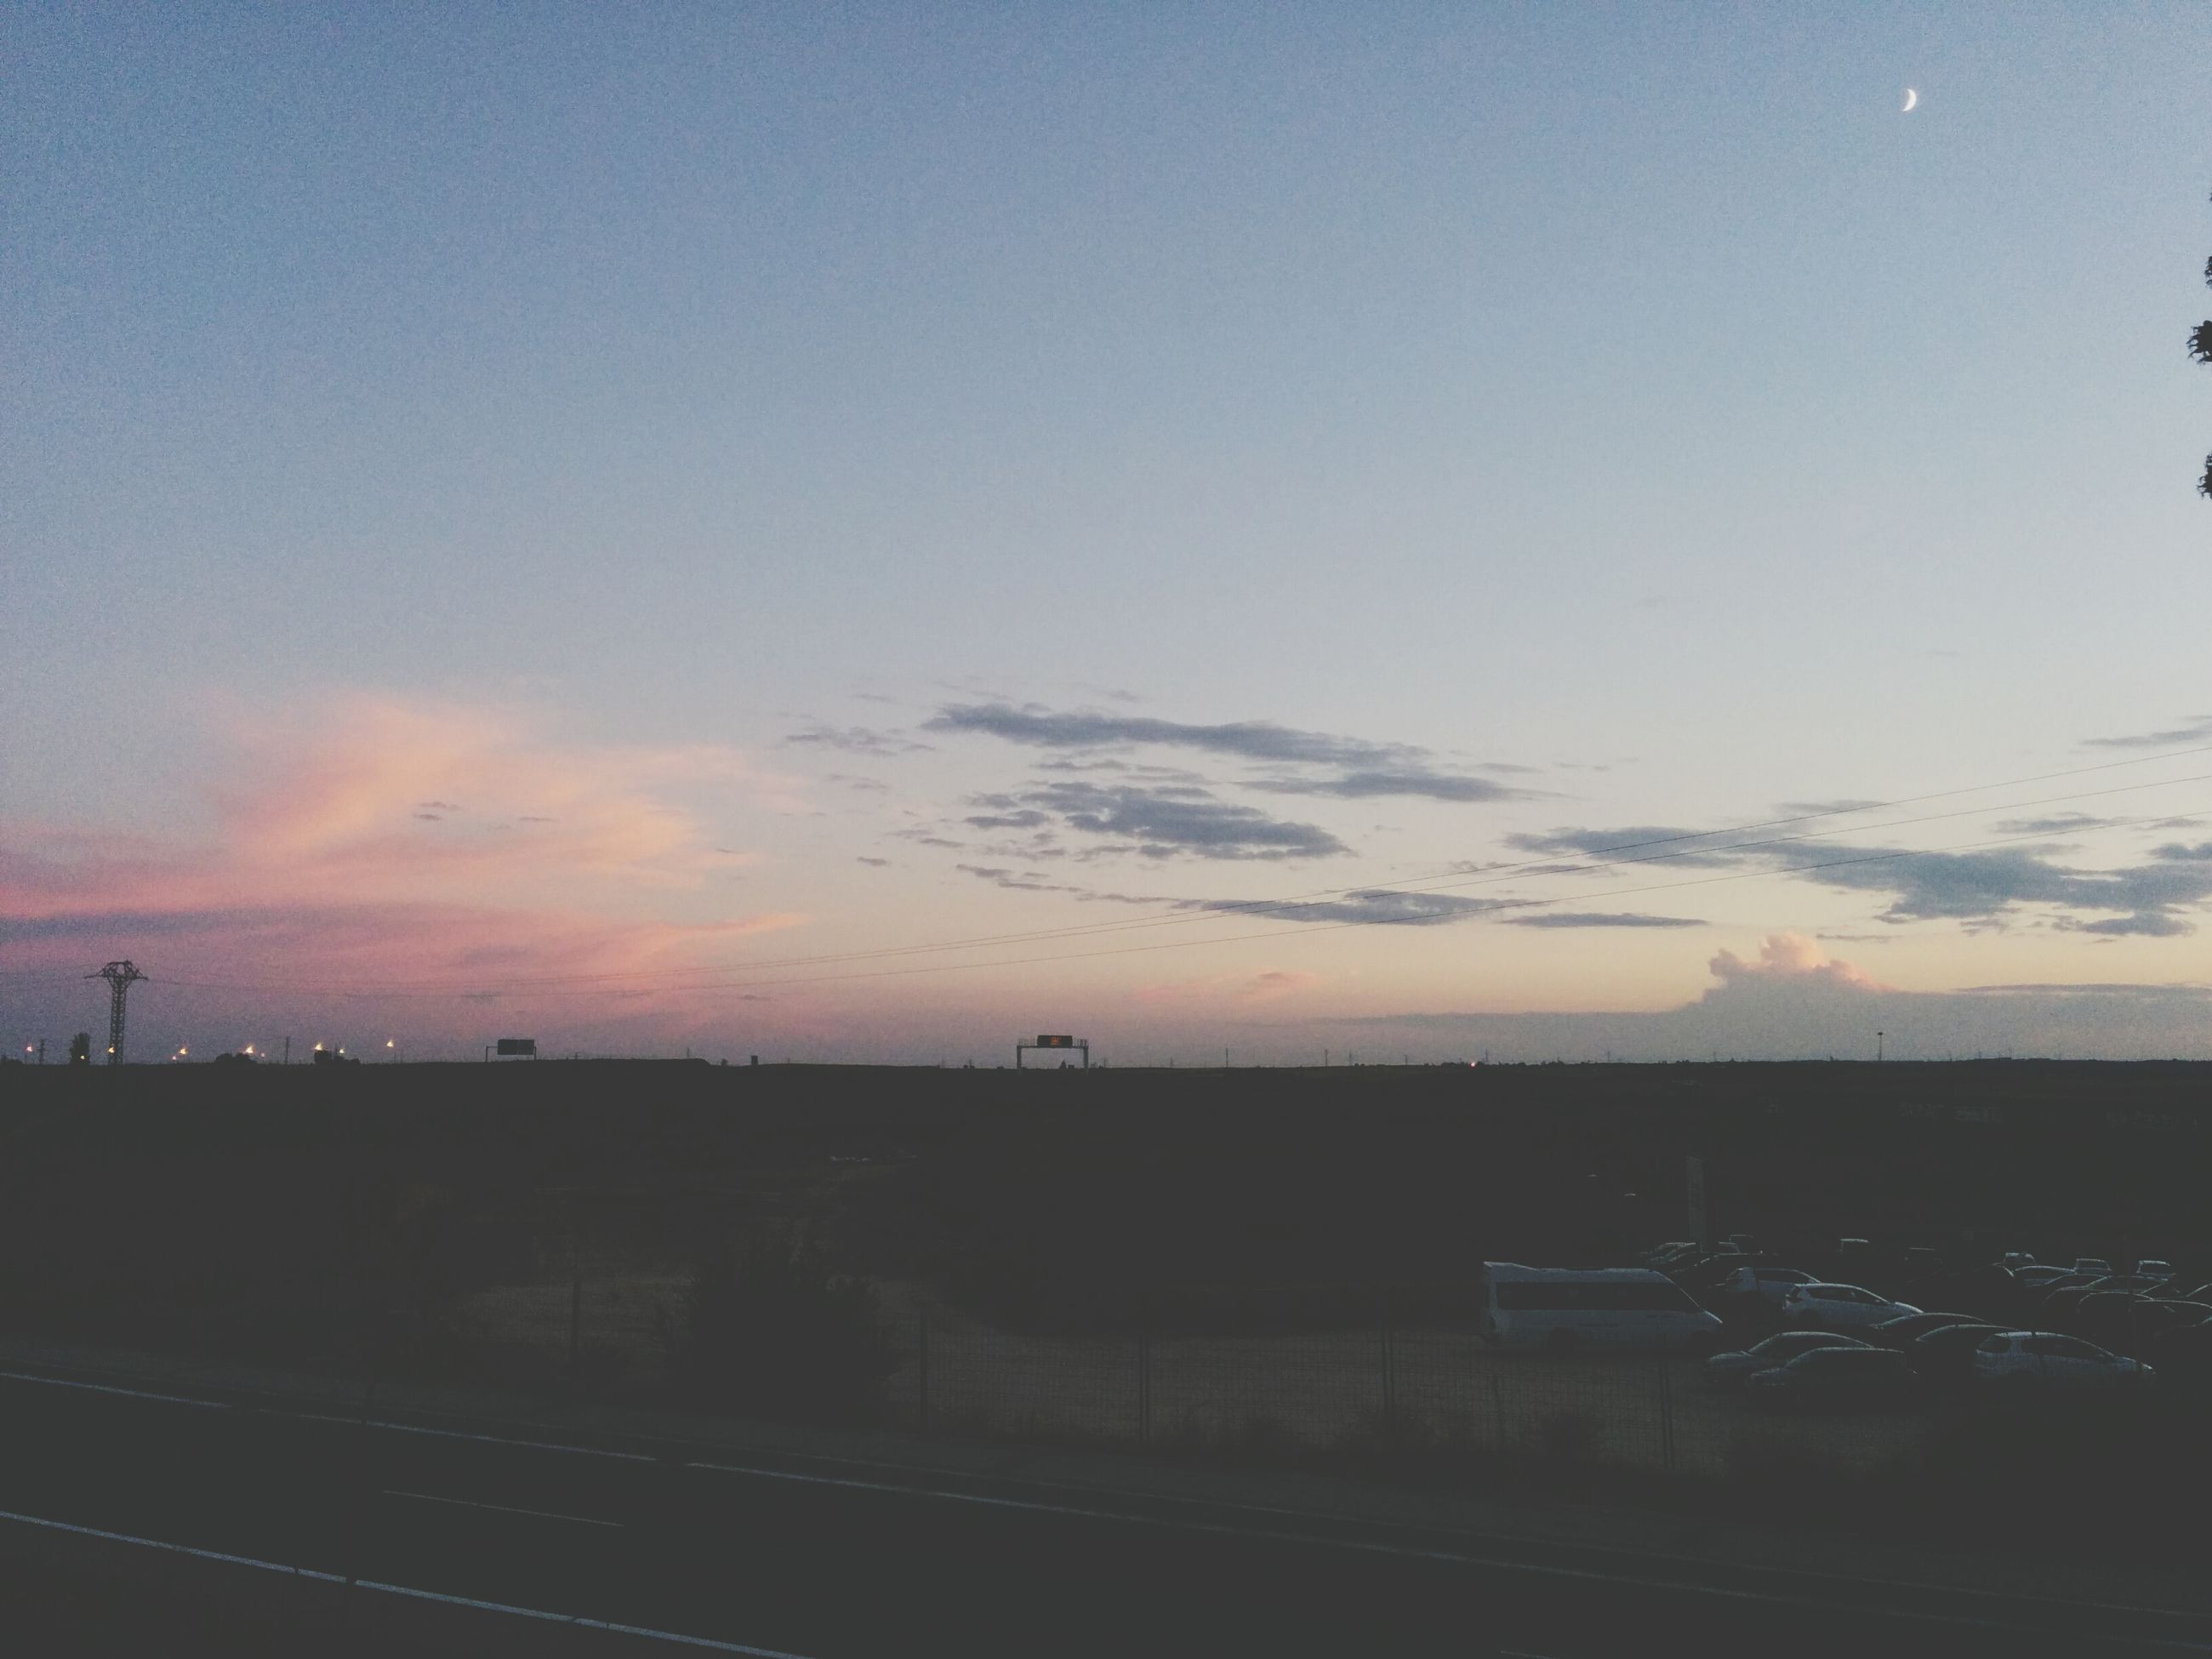 sunset, sky, landscape, silhouette, dusk, copy space, scenics, tranquil scene, built structure, nature, tranquility, building exterior, cloud - sky, beauty in nature, architecture, transportation, road, outdoors, no people, field